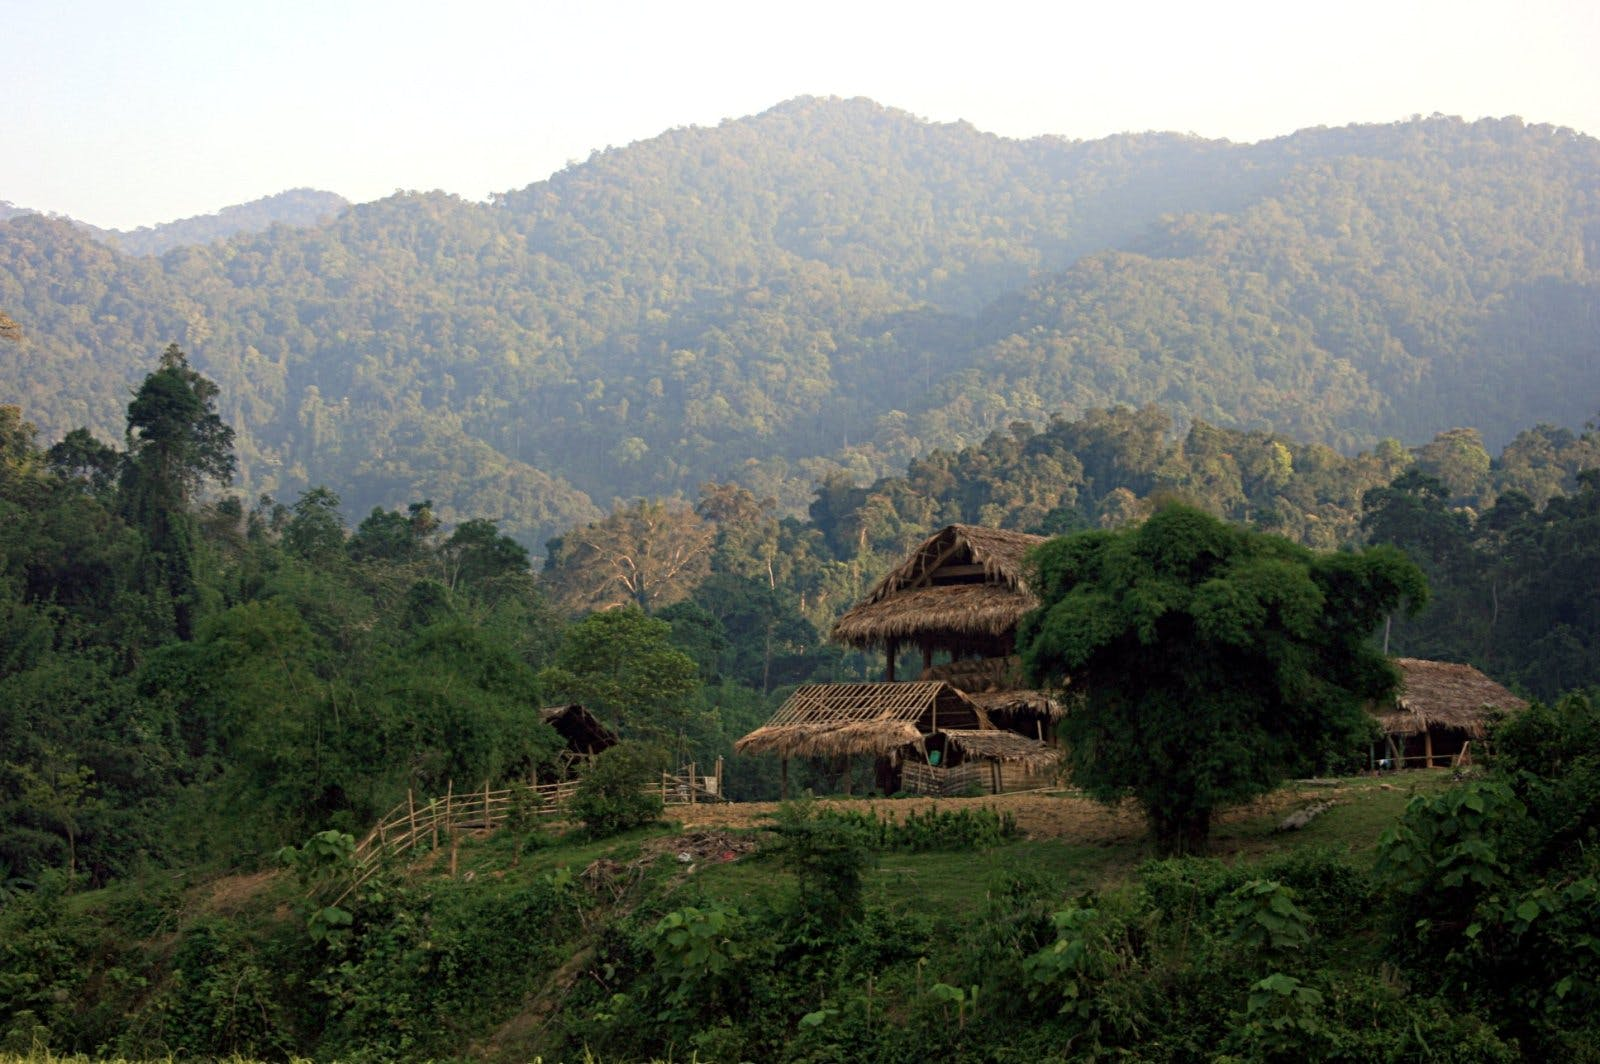 Southern Annamites Montane Rainforests